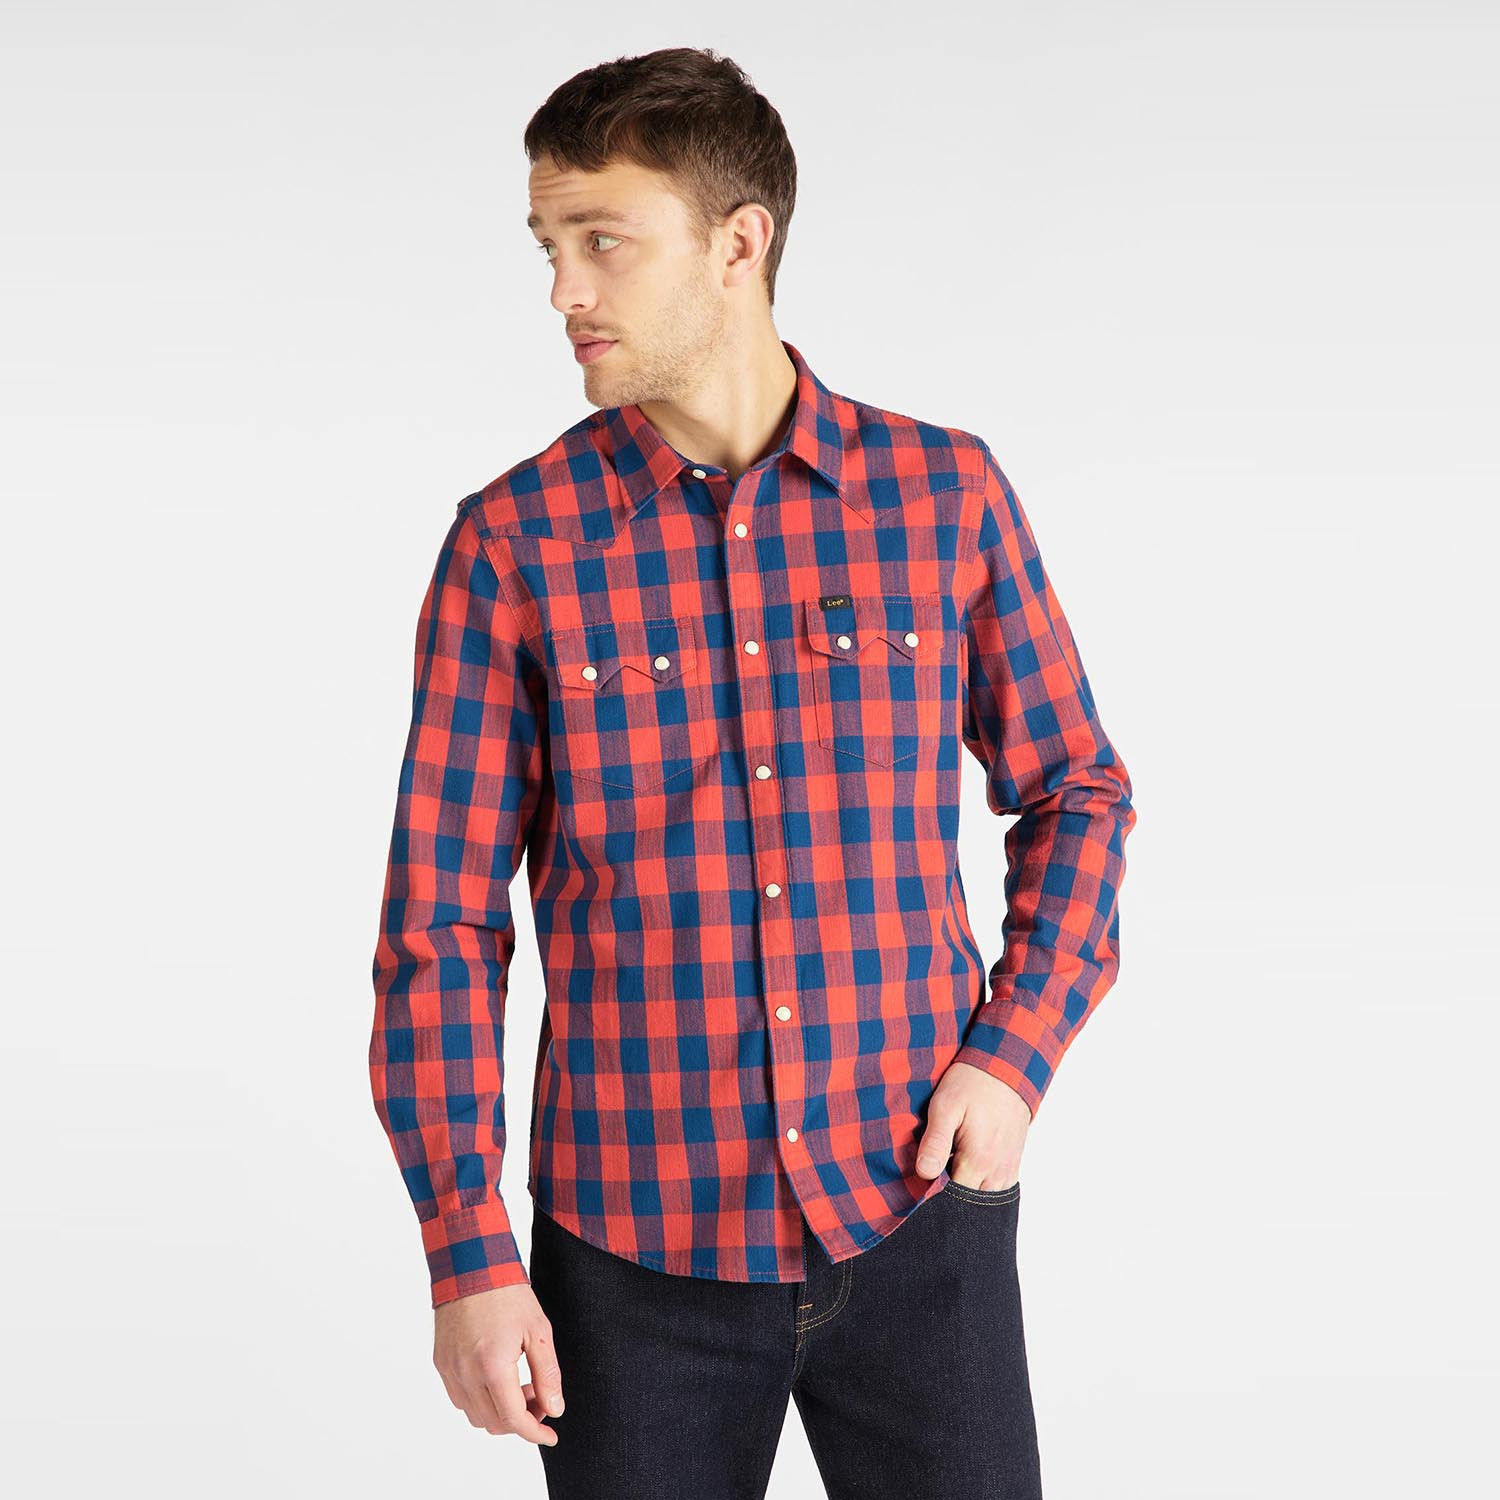 Lee Rider Men's Shirt (9000049896_2082)